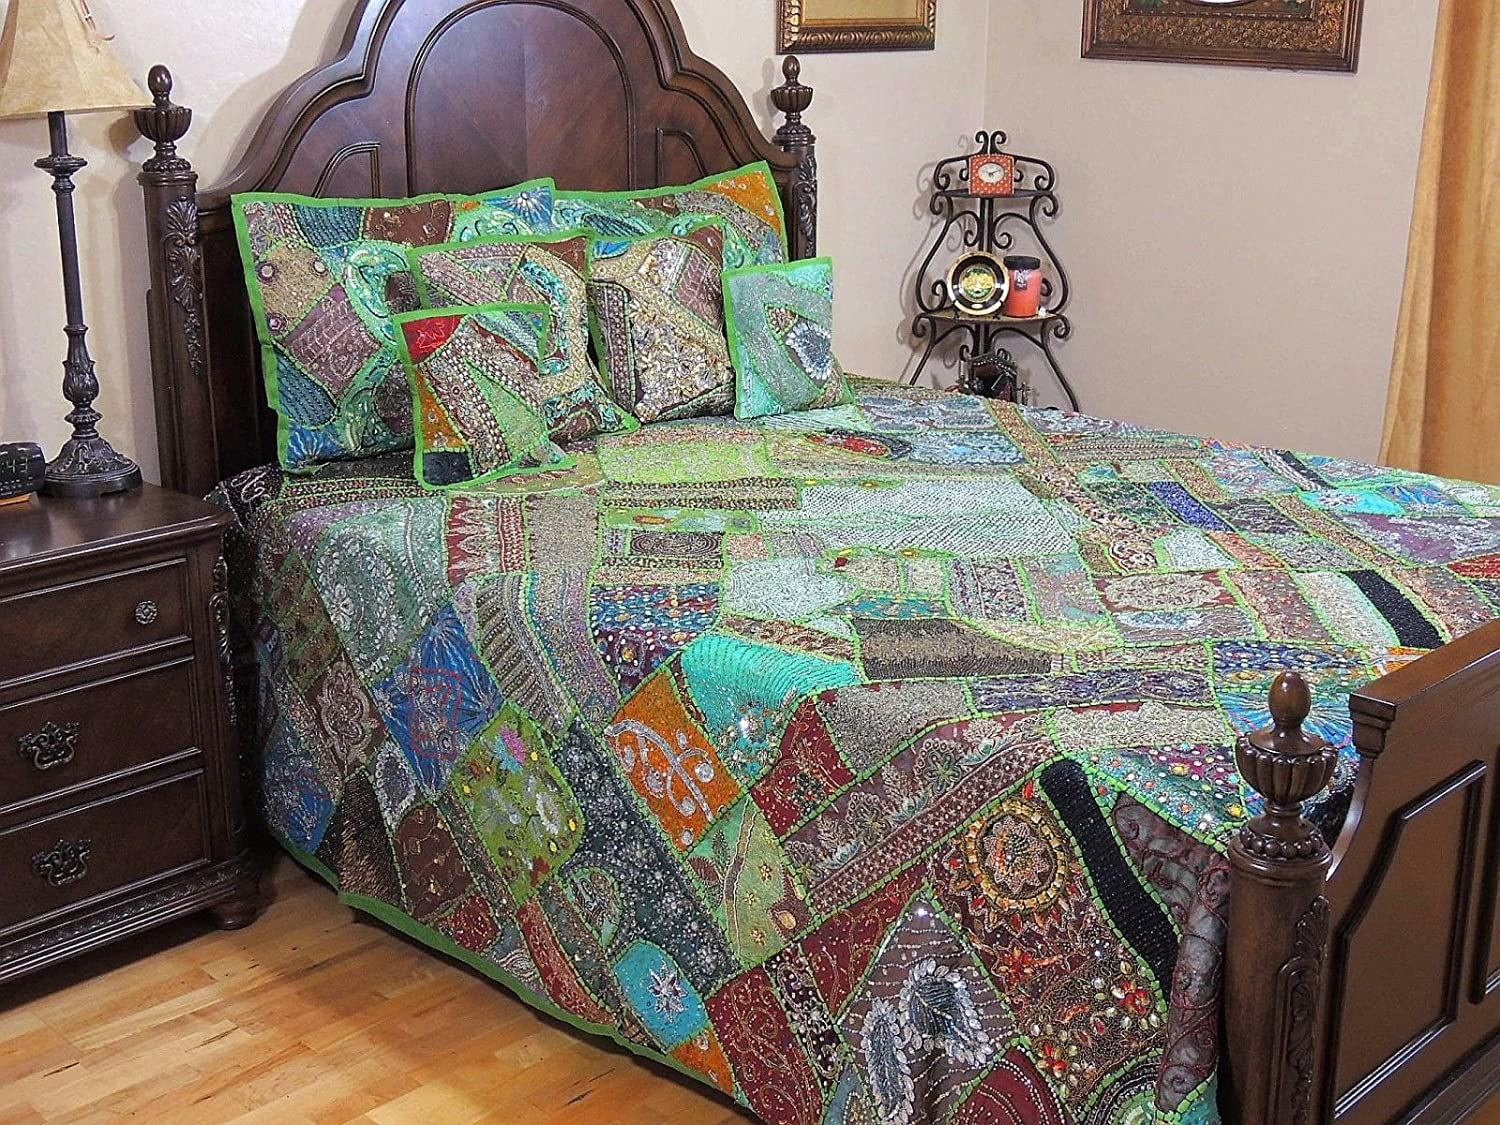 NovaHaat Green Unique Sari Patchwork Bedding Set - 7PC Moti, Beads and Zardozi Embroidery Work Handmade Indian Duvet, Pillow Shams and Cushion Covers ~ King 108 Inch x 92 Inch